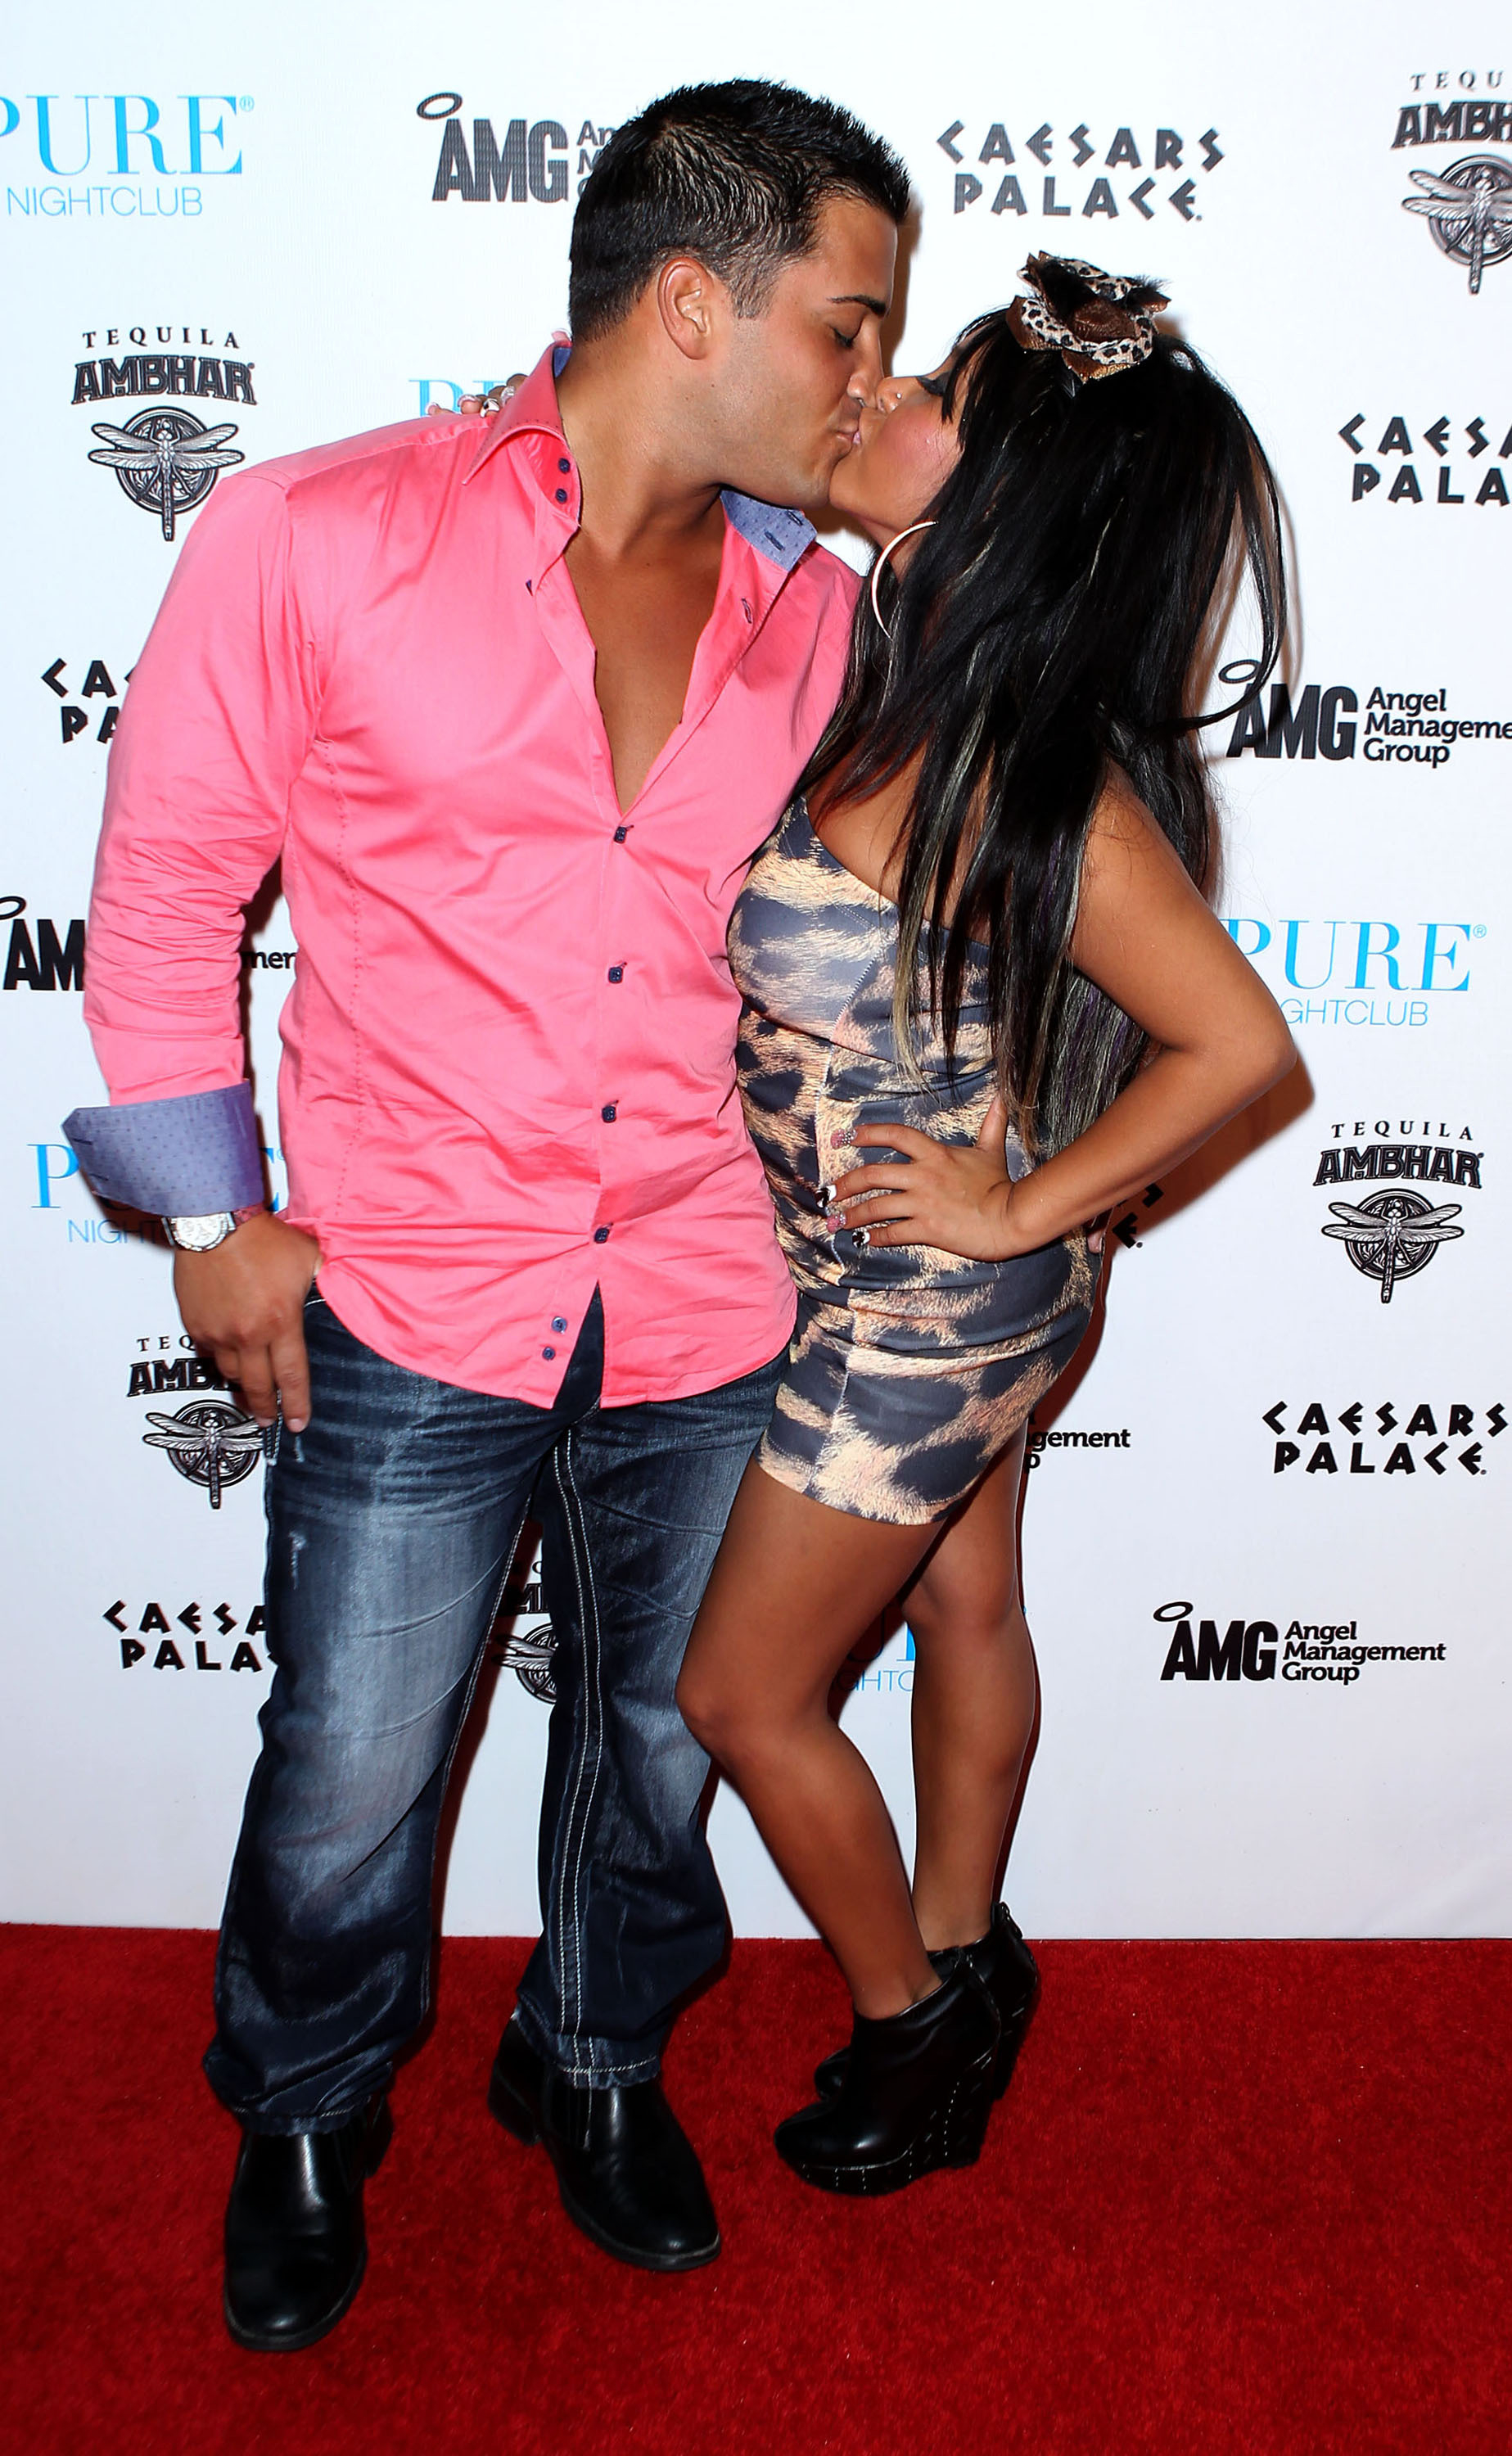 Jionni Lavalle and Snooki kiss